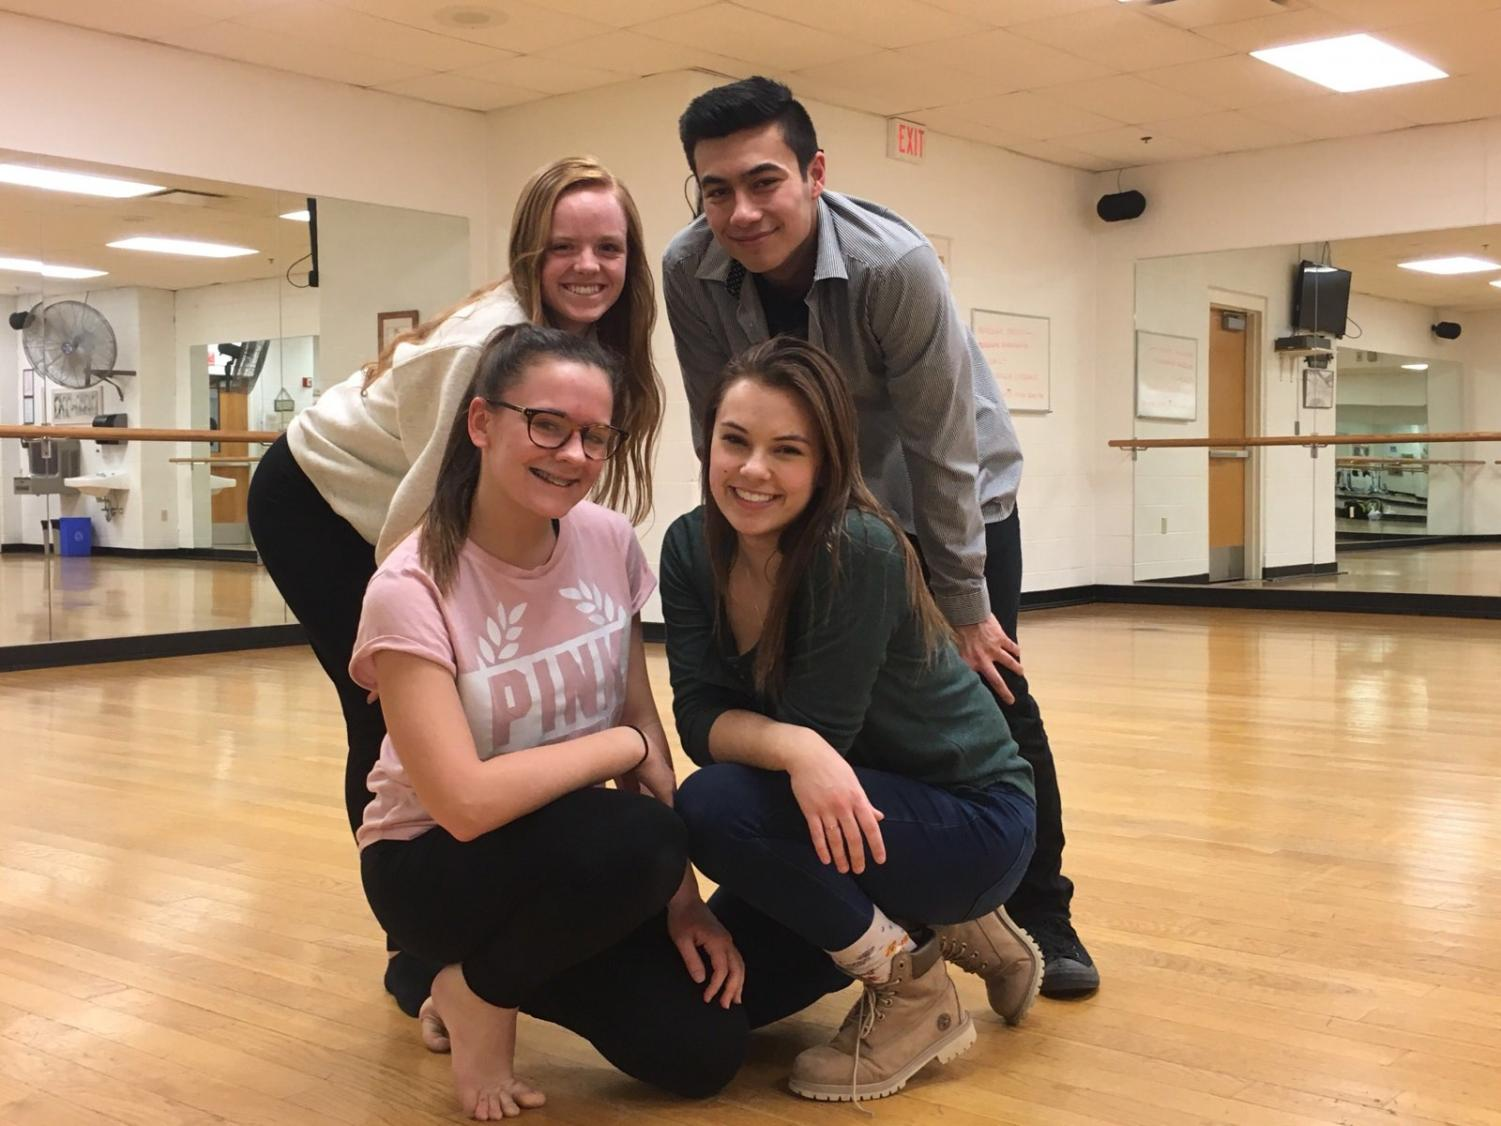 Pictured are the Orchesis board members: (top left) President Amanda Pollock, (top right) Secretary Josh Wolf, (bottom left) Vice President Lexi Quemeneur, and (bottom right) Show Chairperson Sarah Evans.